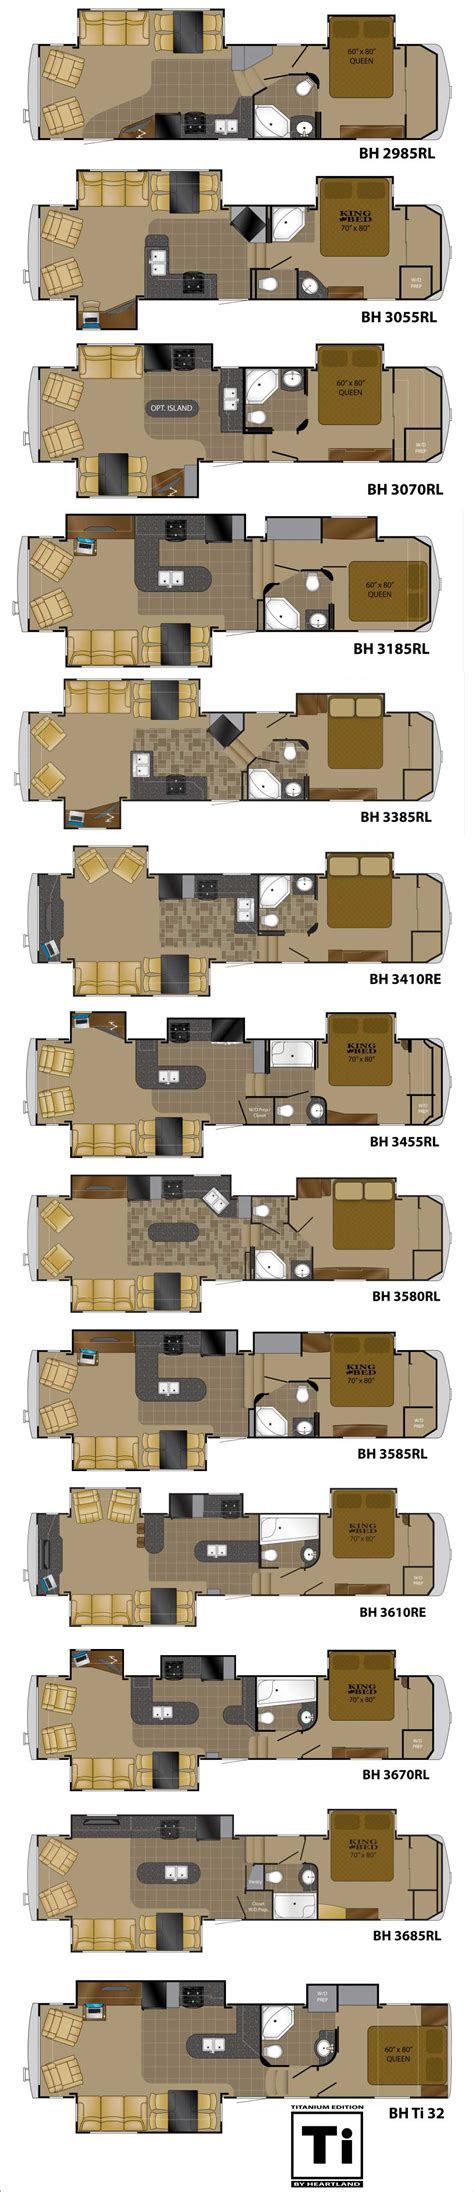 alpenlite 5th wheel floor plans alpenlite 5th wheel floor plans website of mareyard